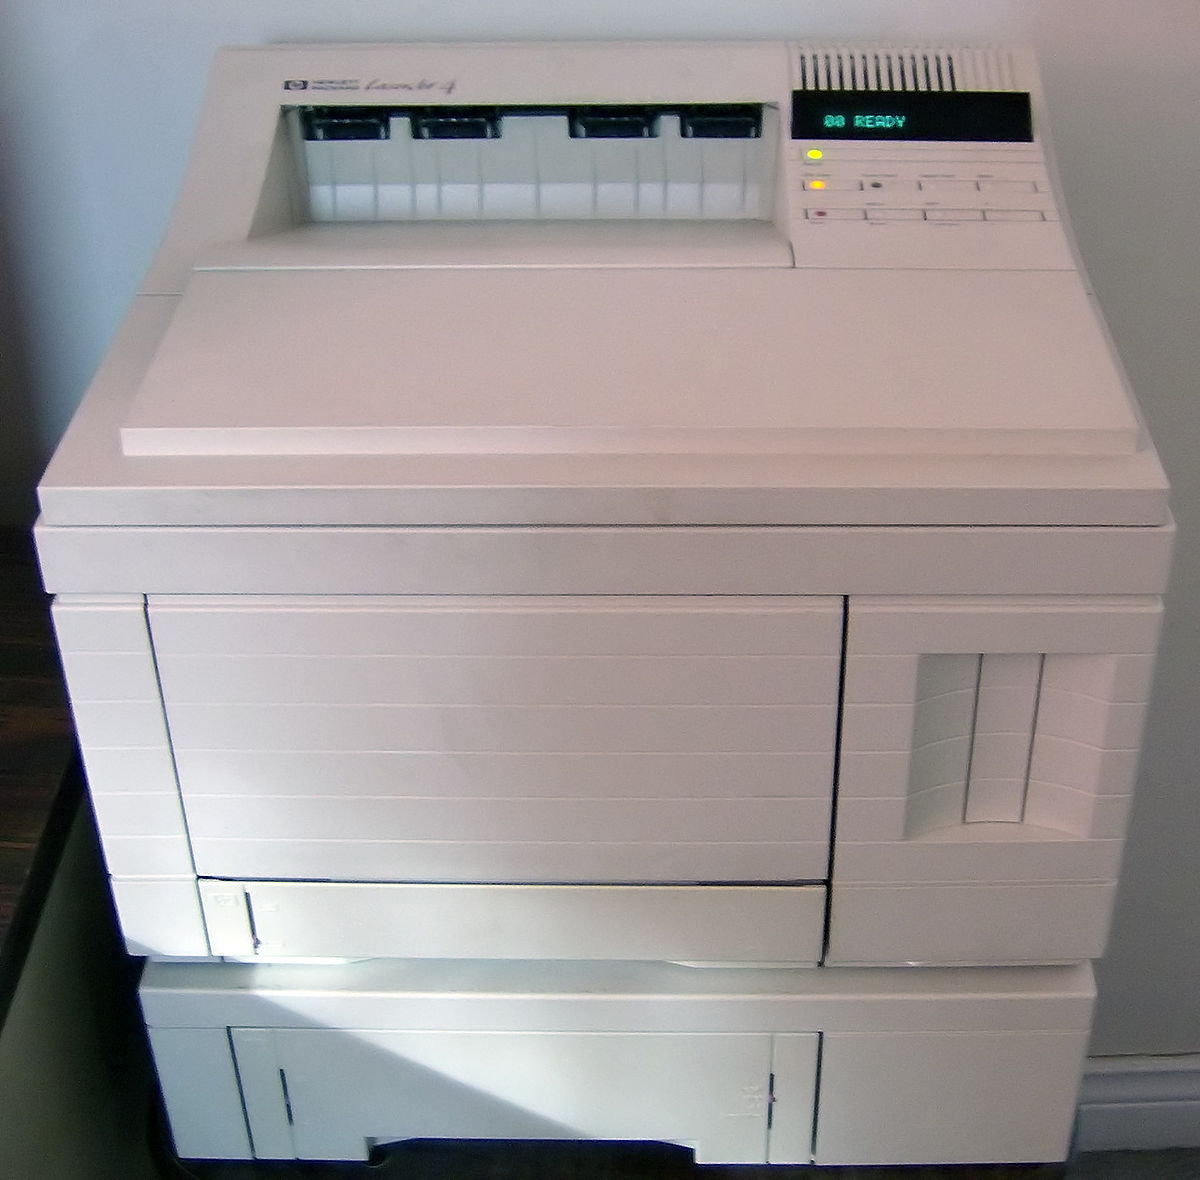 hewlett packard laserjet 4 plus drivers download rh e curry info HP LaserJet 4 Plus Display HP LaserJet 4 Plus Parts Diagram